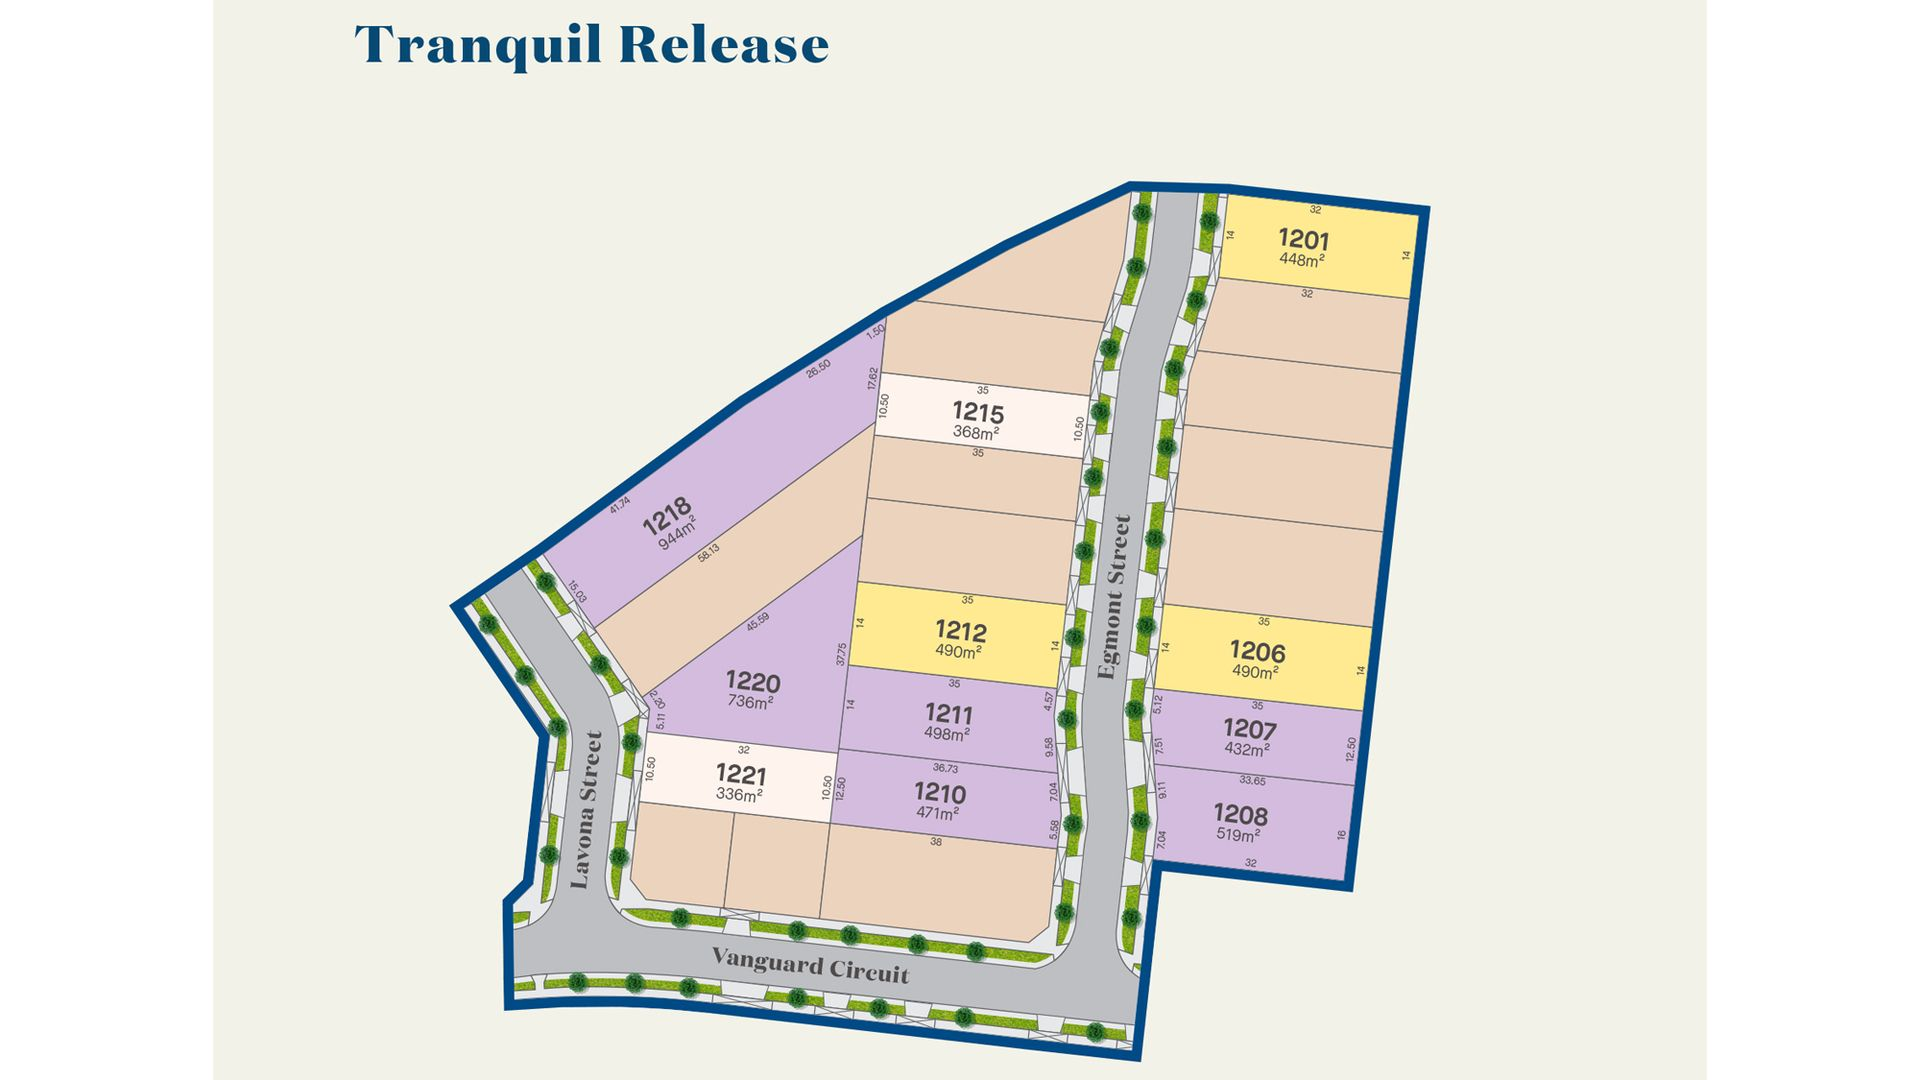 Lot 1208, Life Point Egmont Street, Point Cook VIC 3030, Image 2